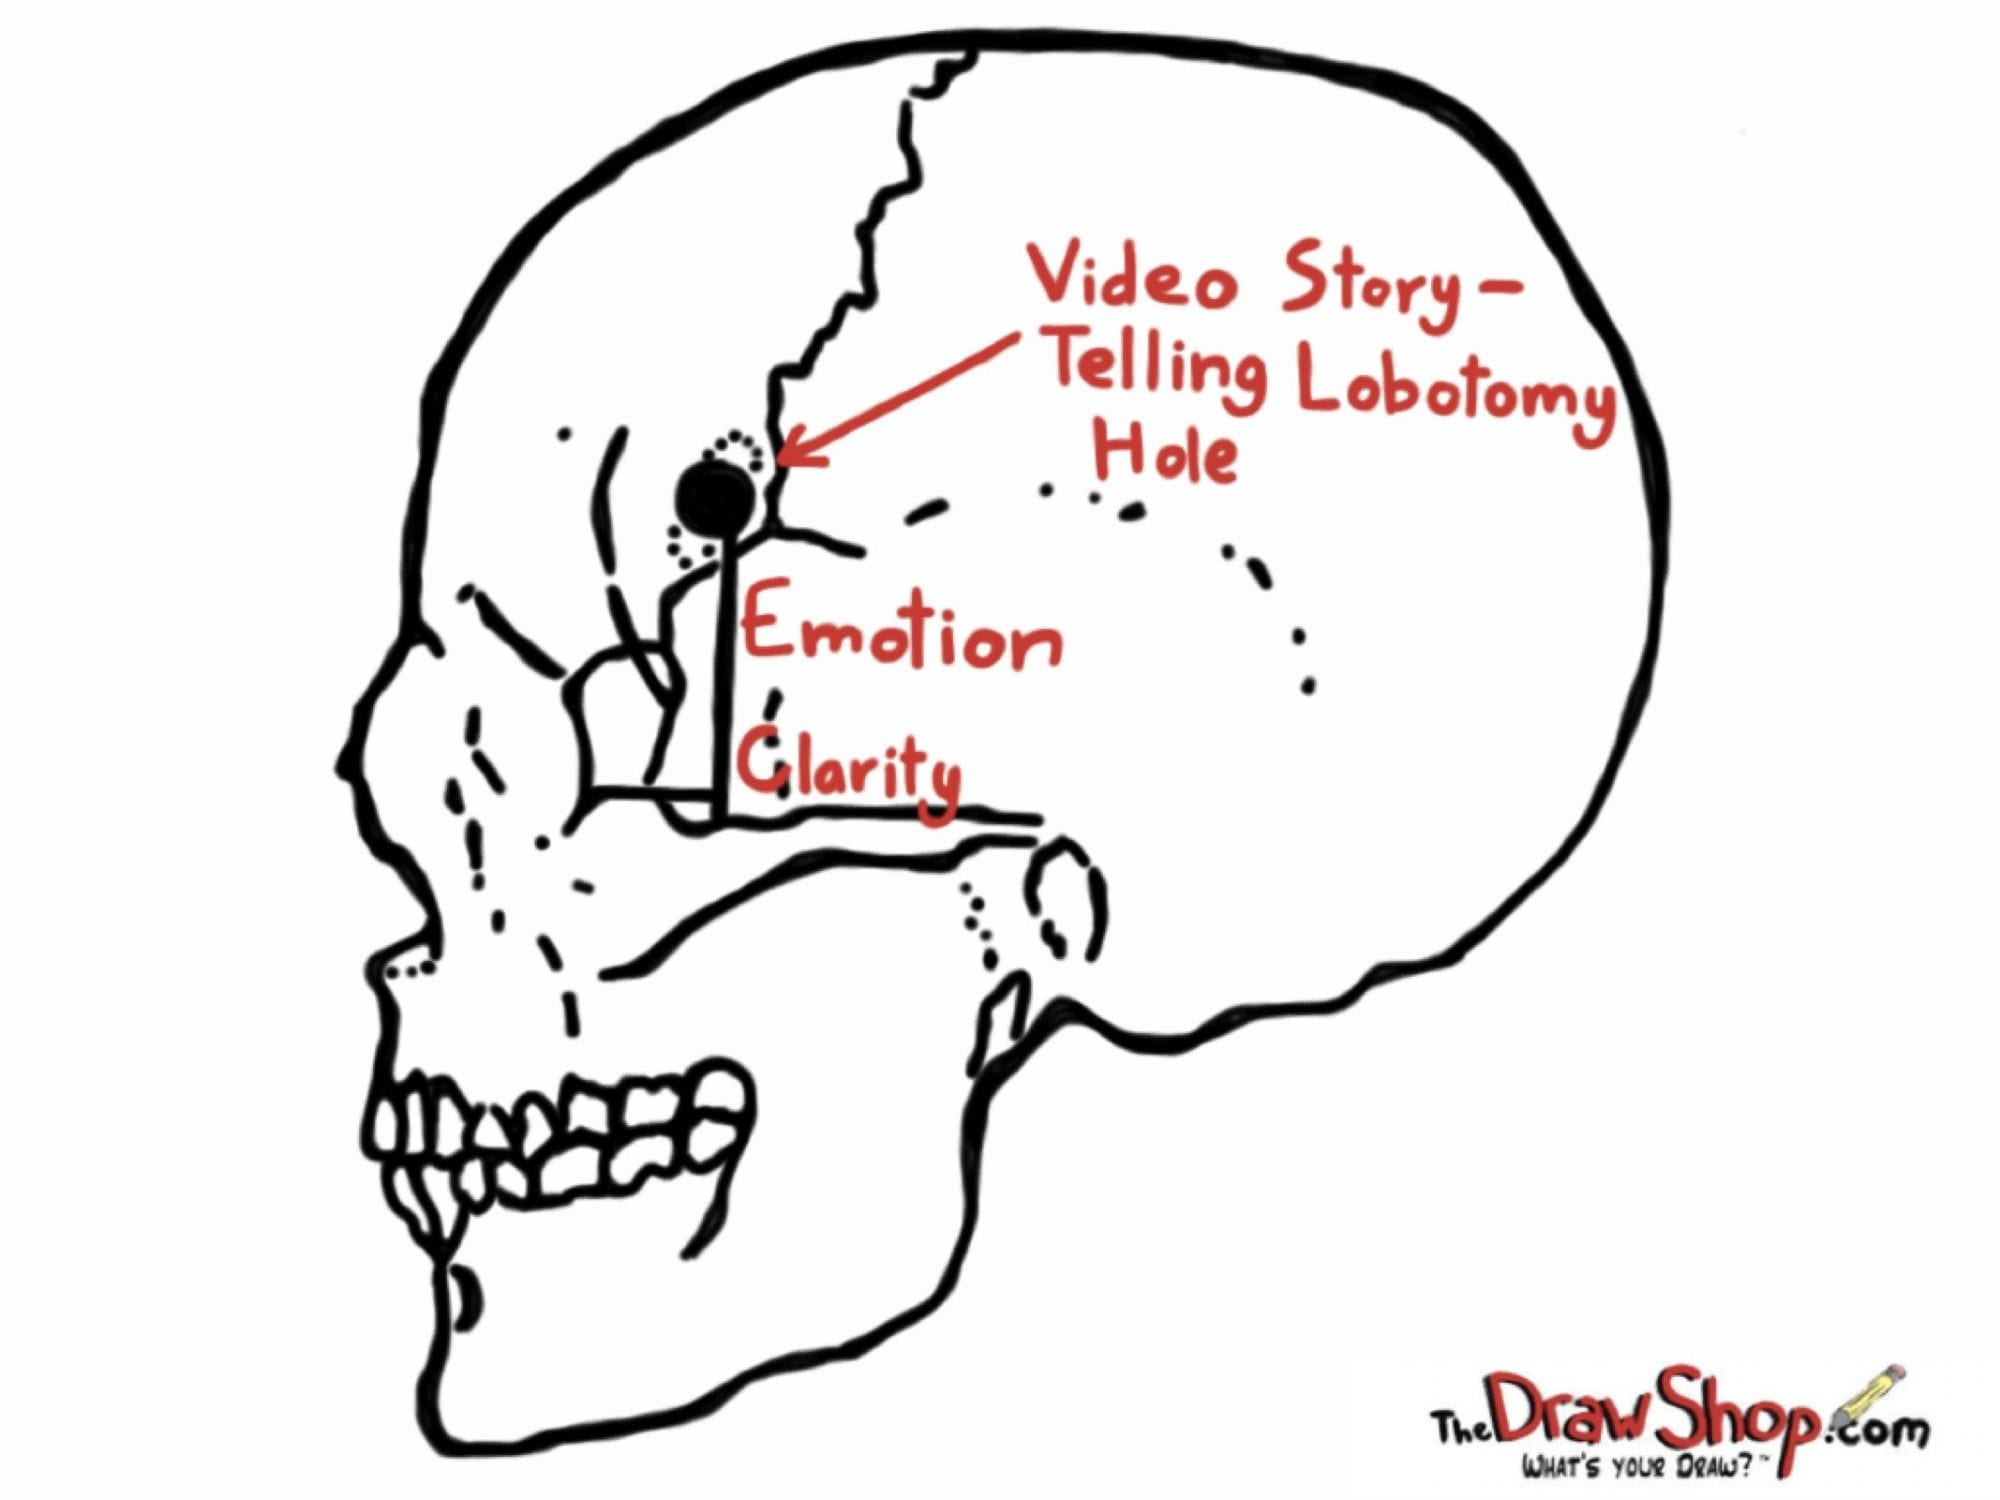 Two Simple Pills For Reversing Your Video Storytelling